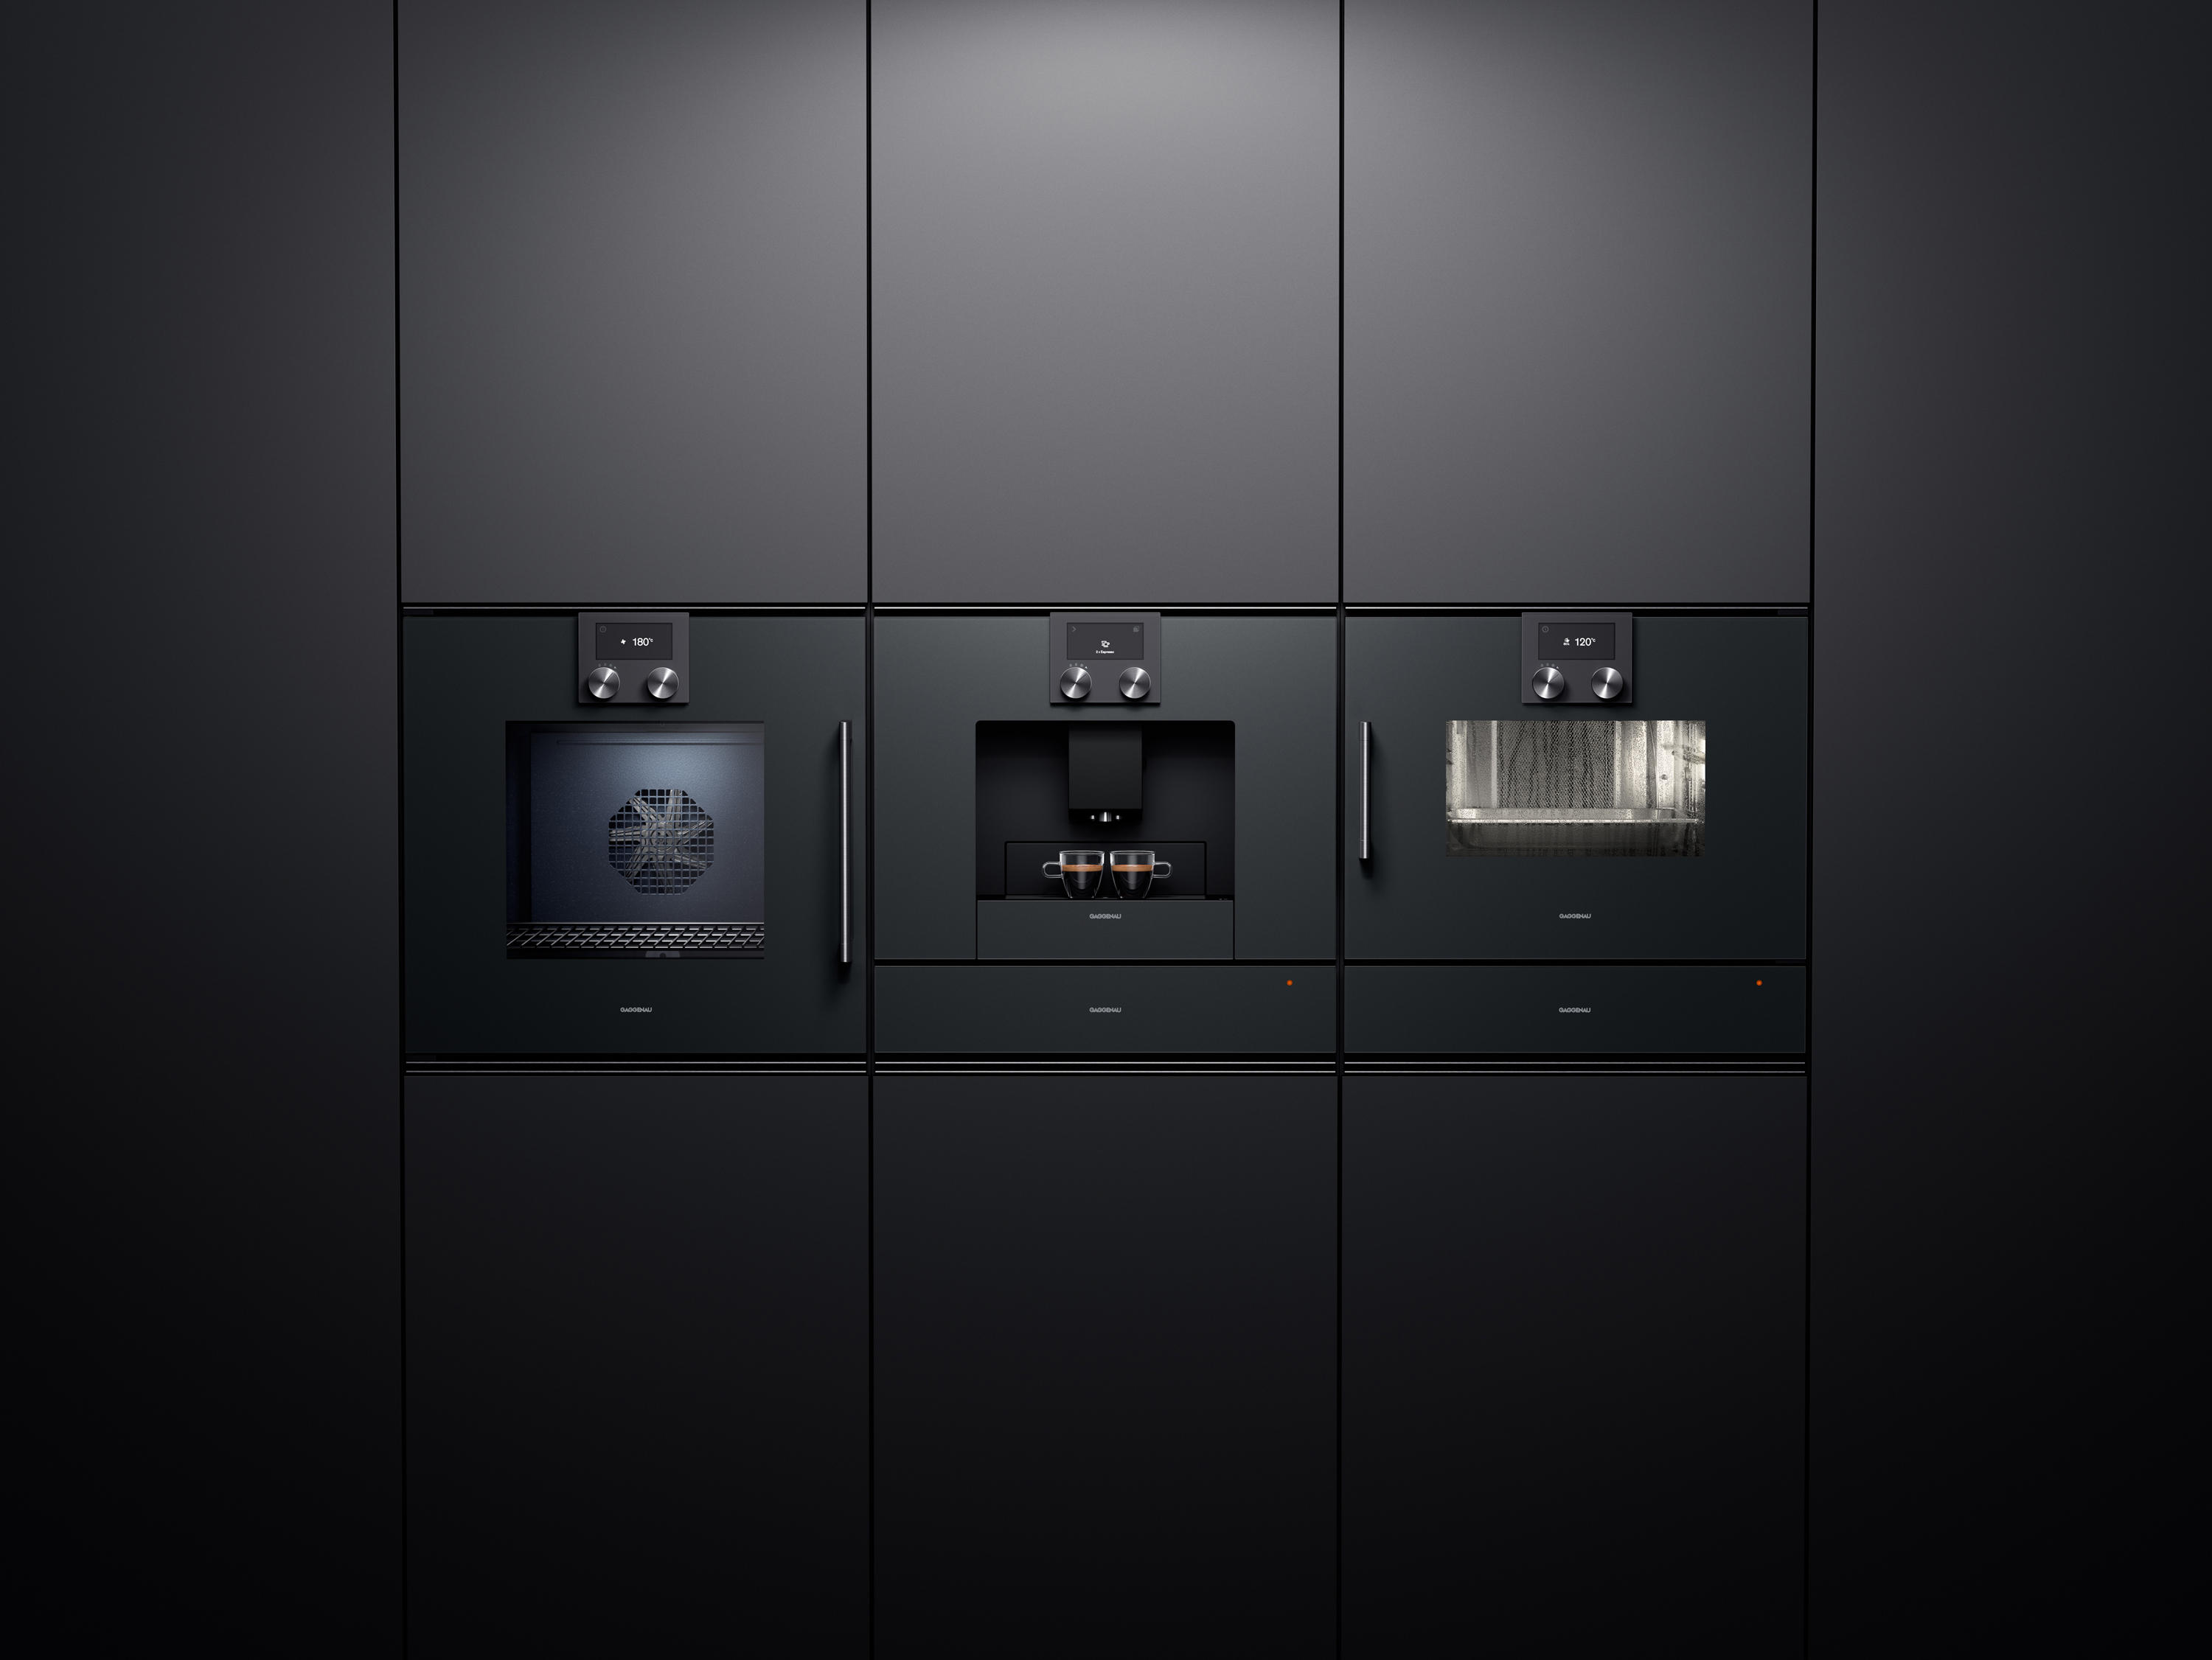 gaggenau flex induktionskochfeld gaggenau tischl ftung al edelstahl g nstig kaufen gaggenau. Black Bedroom Furniture Sets. Home Design Ideas